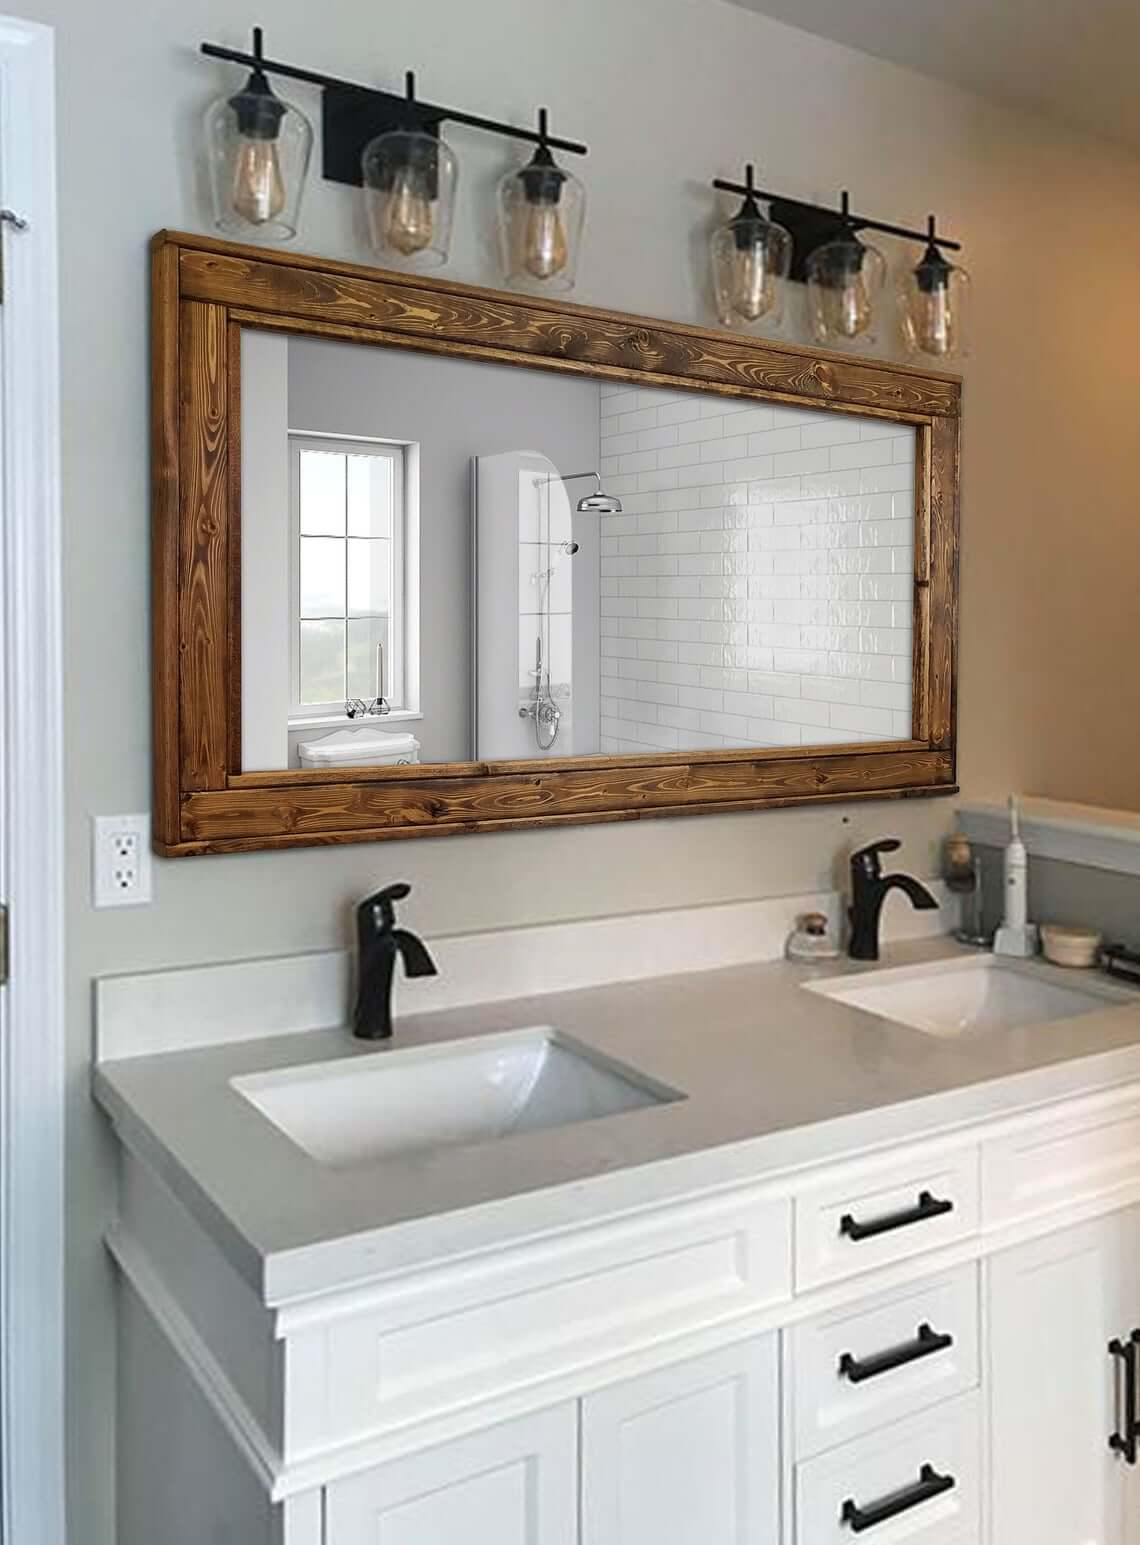 Stunning and Rich Wood Trimmed Vanity Mirror